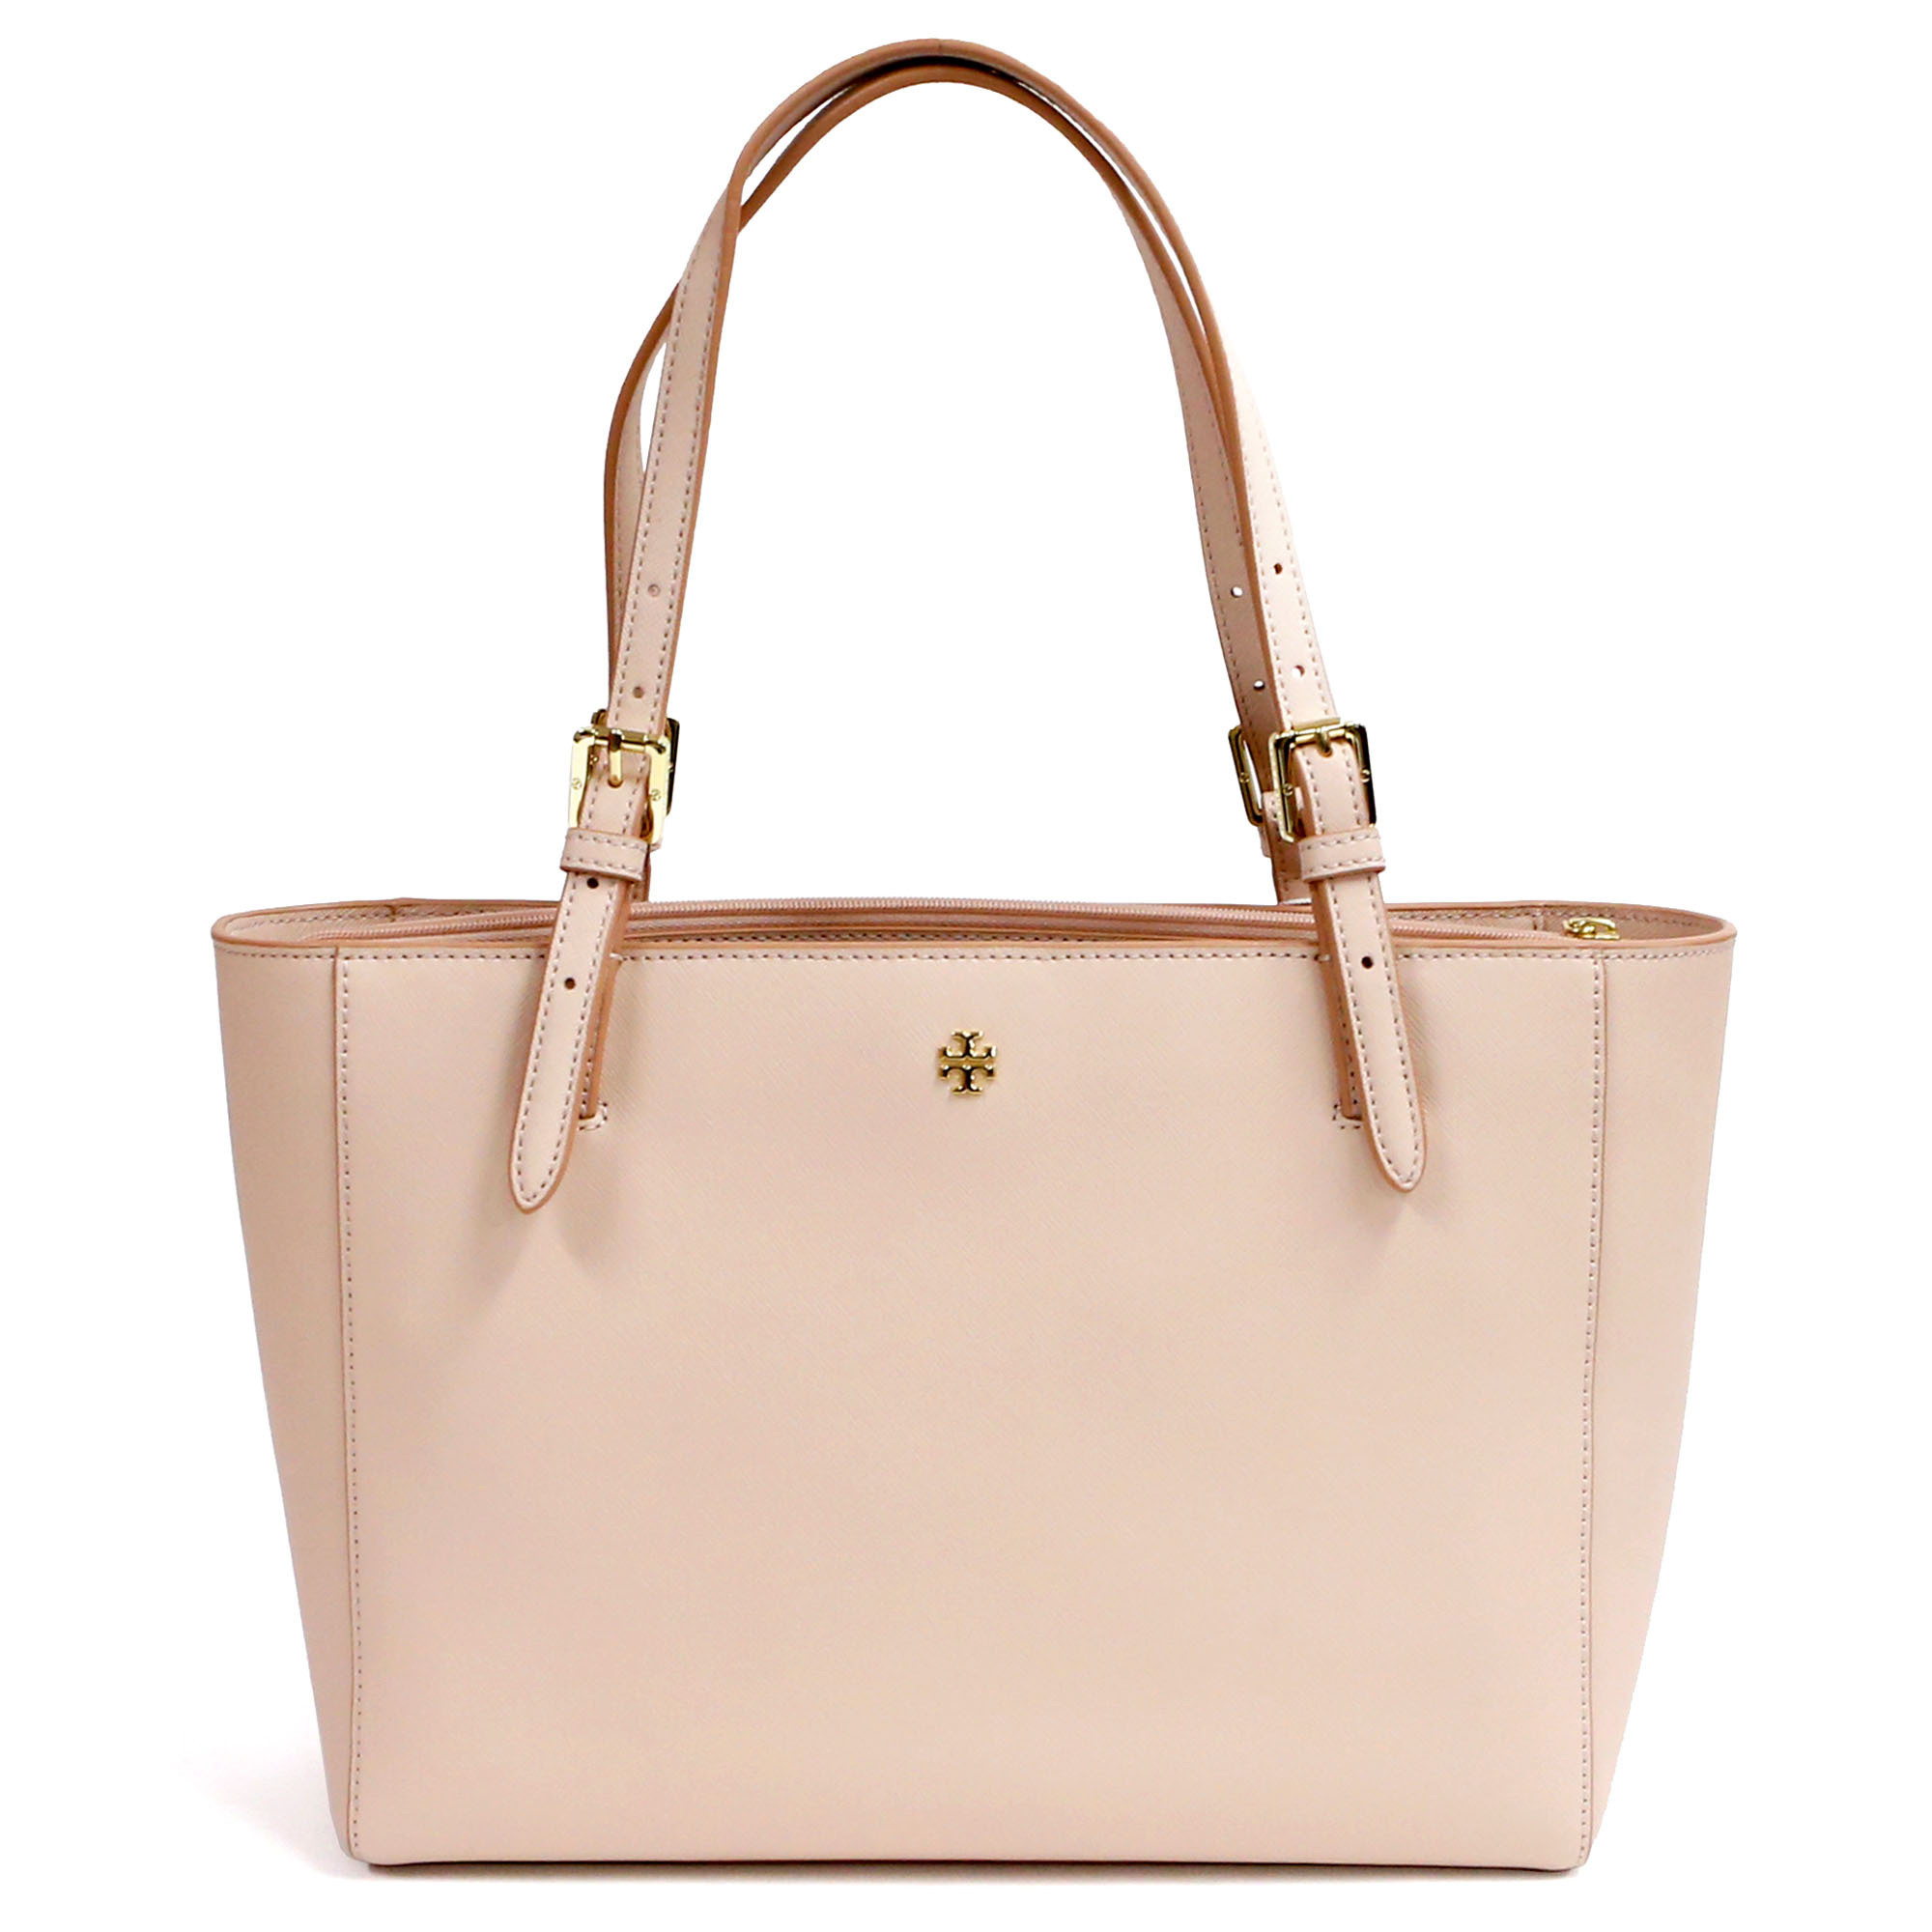 Free shipping on Tory Burch at alltechlife.ml Shop for clothing, shoes and accessories. Totally free shipping & returns.